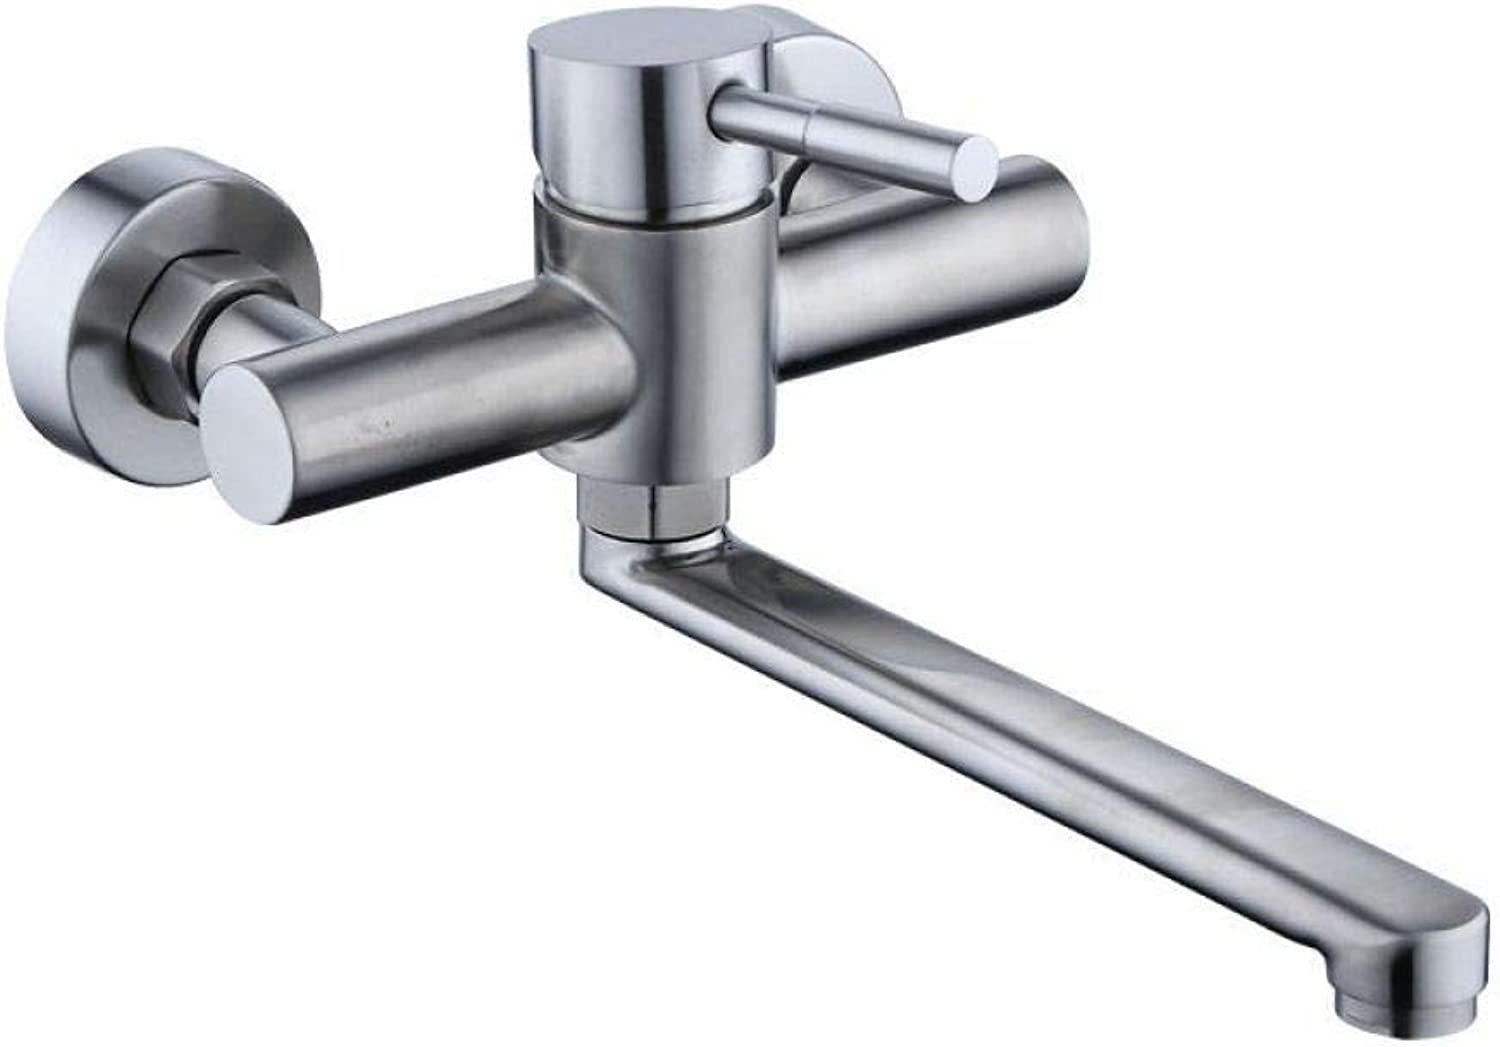 Glz Tap Faucet Stainless Steel Vegetable Basin Faucet